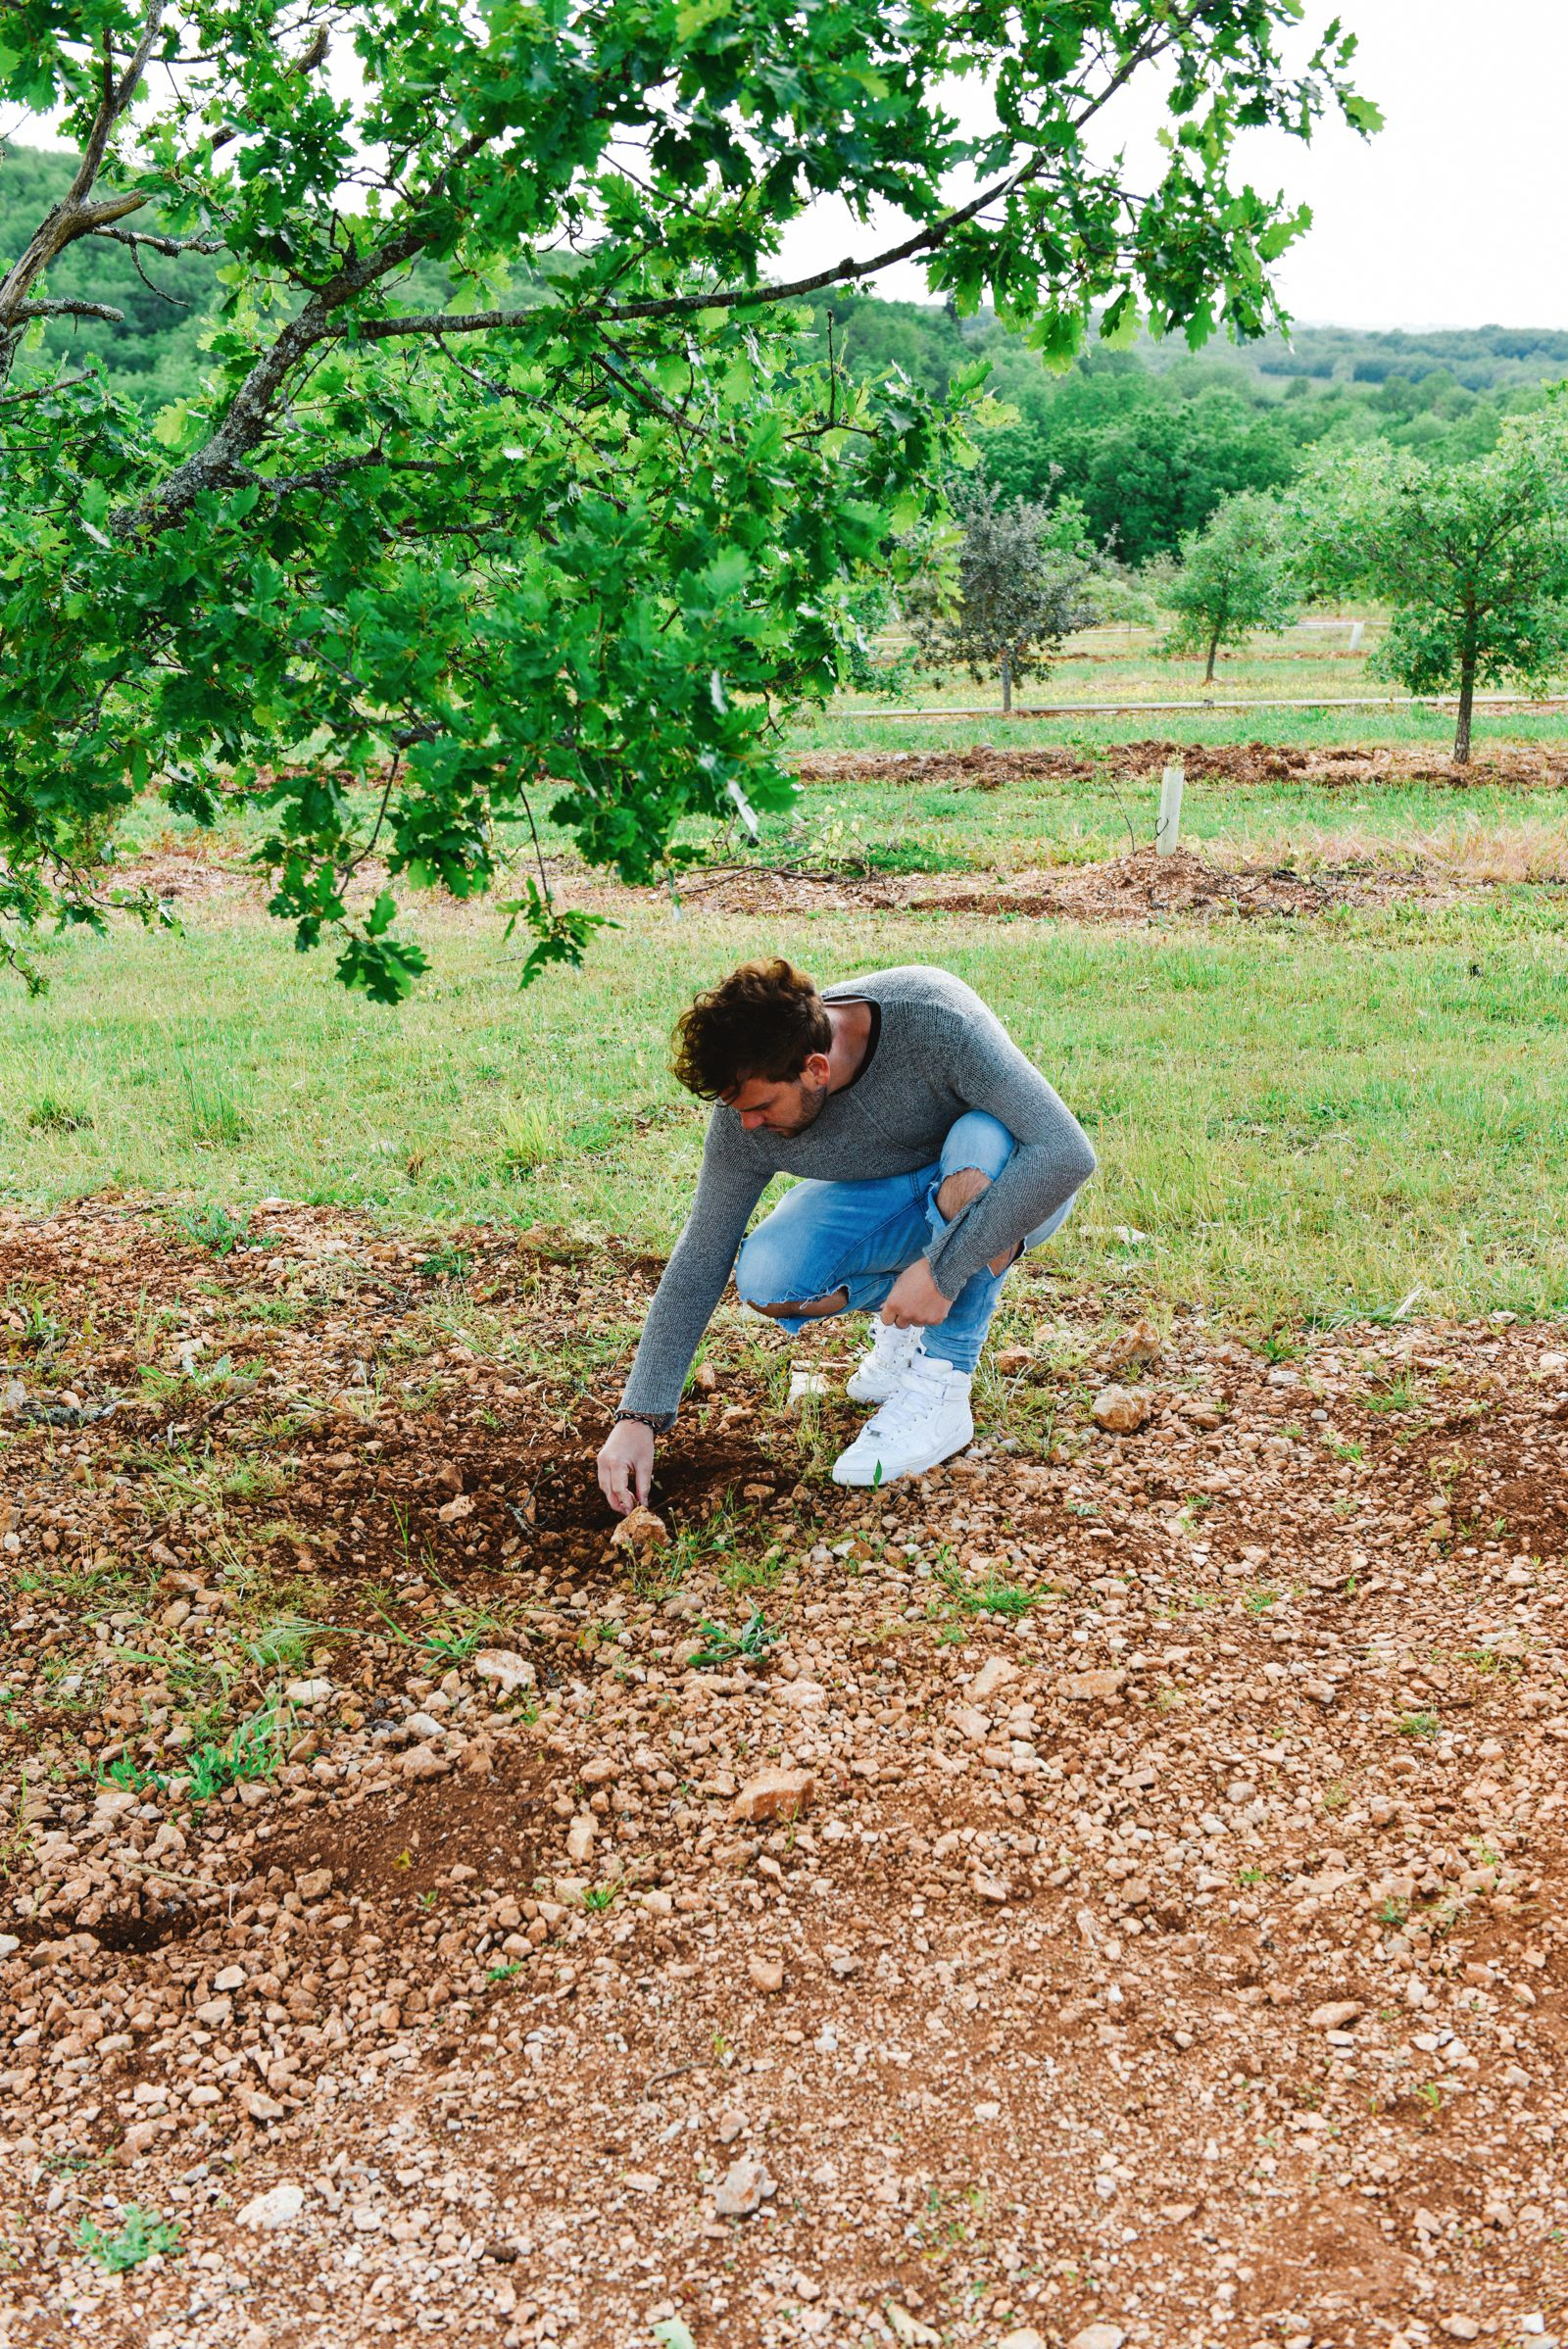 Truffle-Hunting, Chateau-Living And Wine-Tasting In the French Dordogne Valley (8)